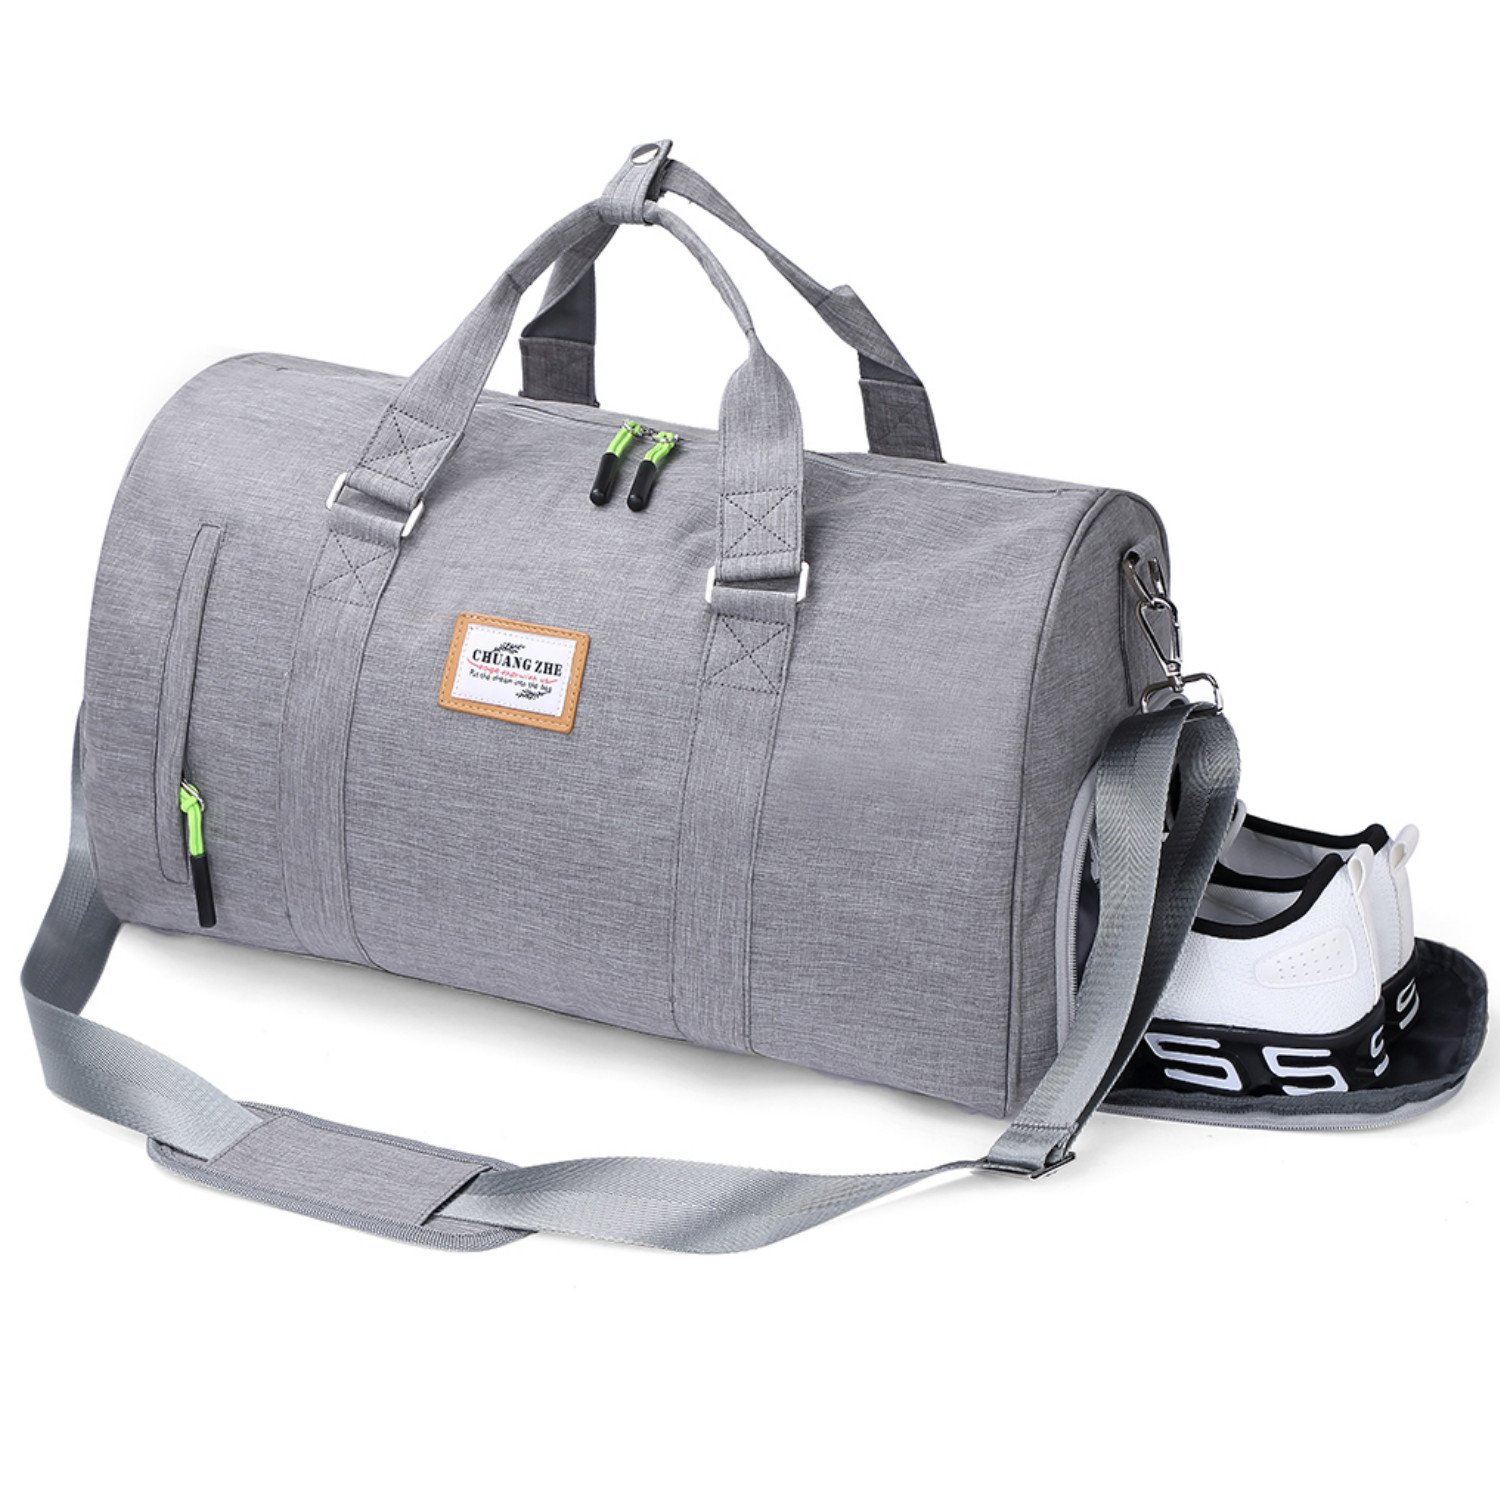 Rocoke Travel Duffel Bag Large Luggage Sports Gym Portable Weekend Bag with Shoe Bag (Grey)